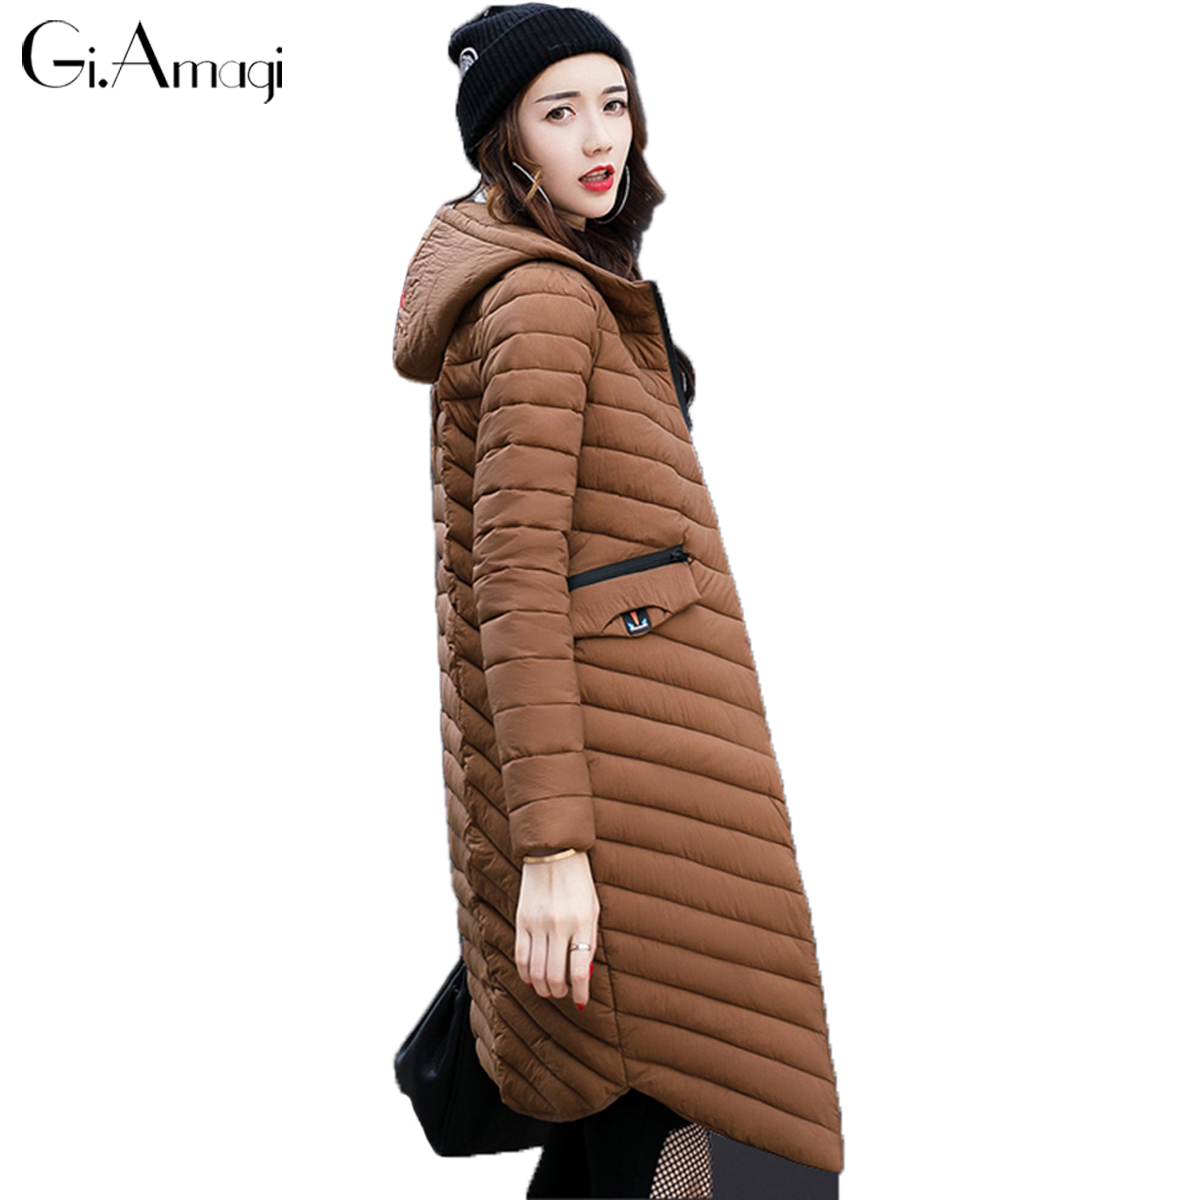 Parkas Mujer Invierno 2017 New Hooded Long Twill Thick Warm Women Winter Coat Plus Size Sobretudo Feminino Casacos Femininos qazxsw new winter cotton coat hooded padded women parkas mujer invierno 2017 winter jacket women warm casacos femininos hb221